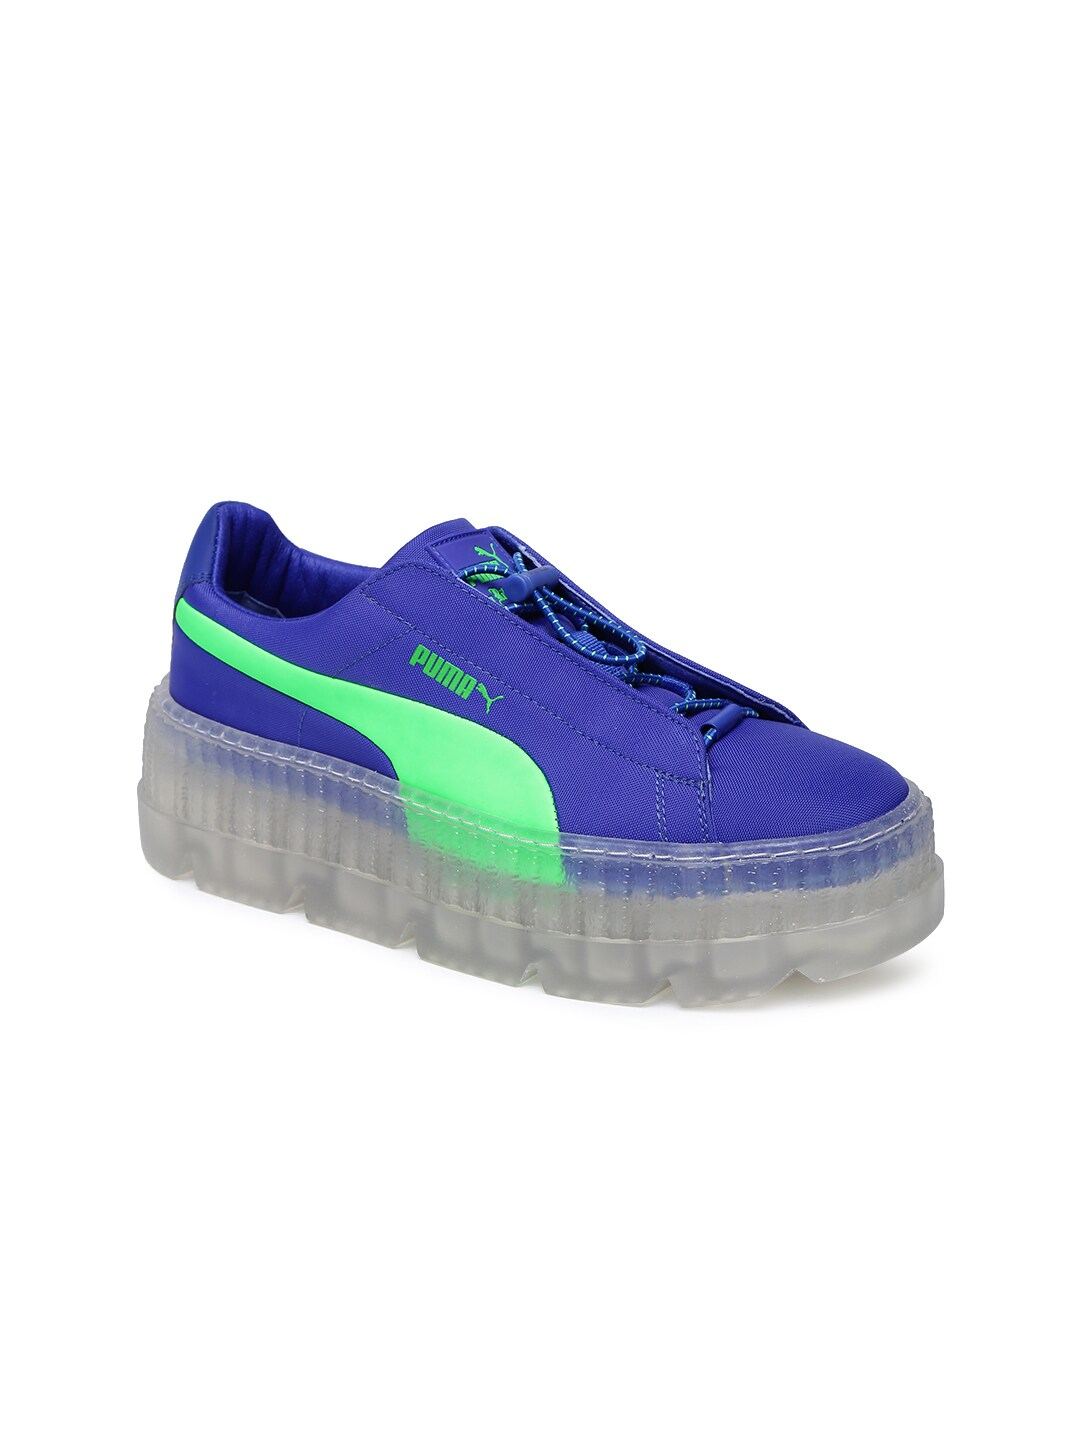 6c25acf7f2c3d Puma Women Blue Cleated Creeper Surf Sneakers